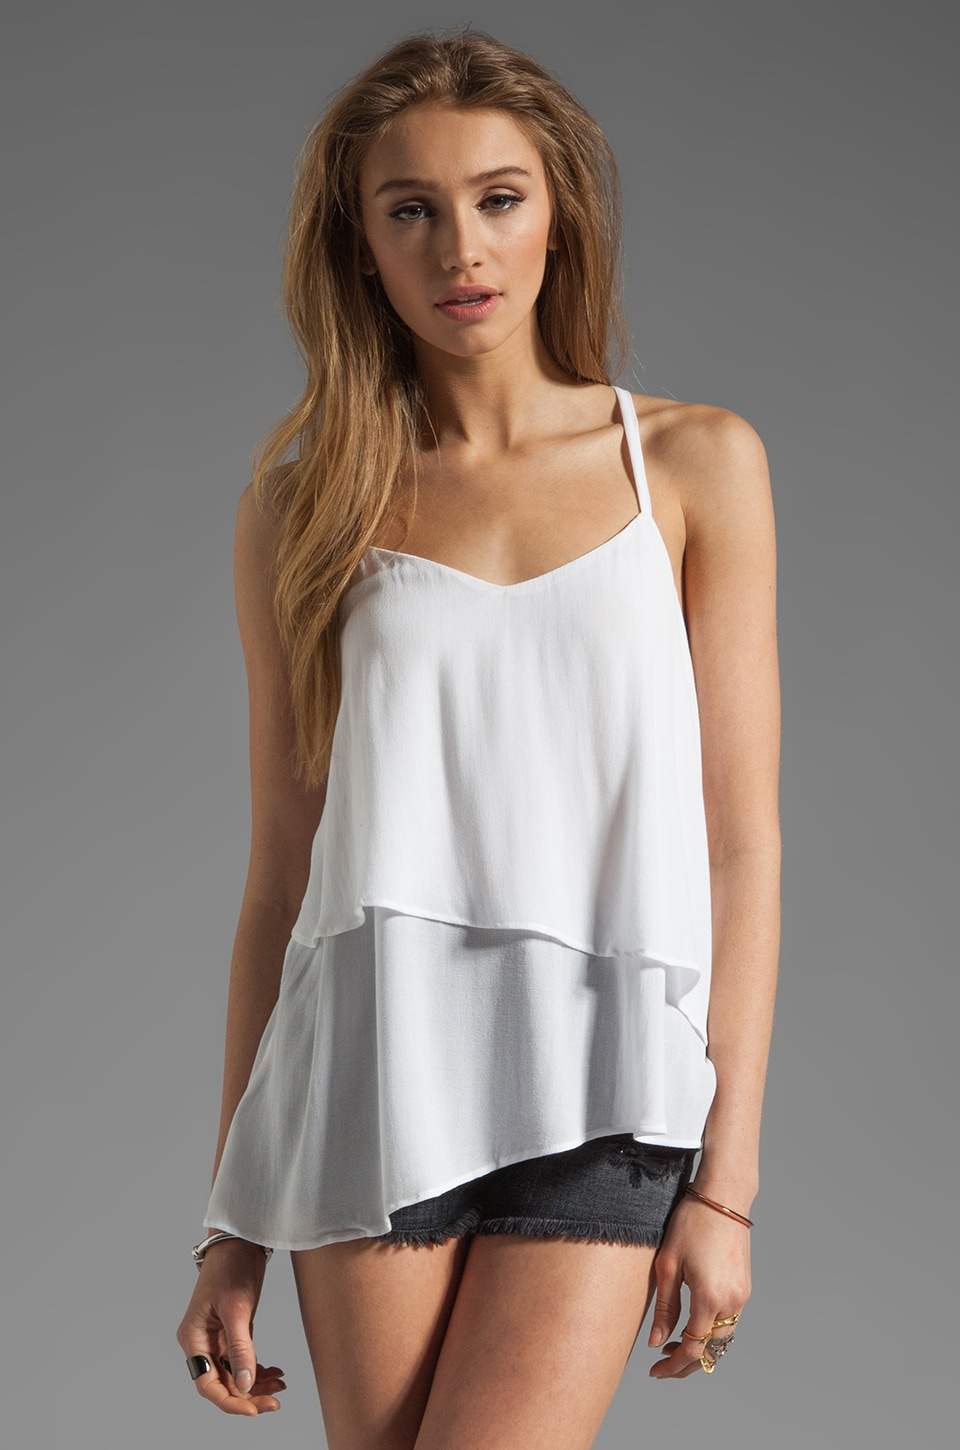 Ella Moss Stella Tiered Tank in White